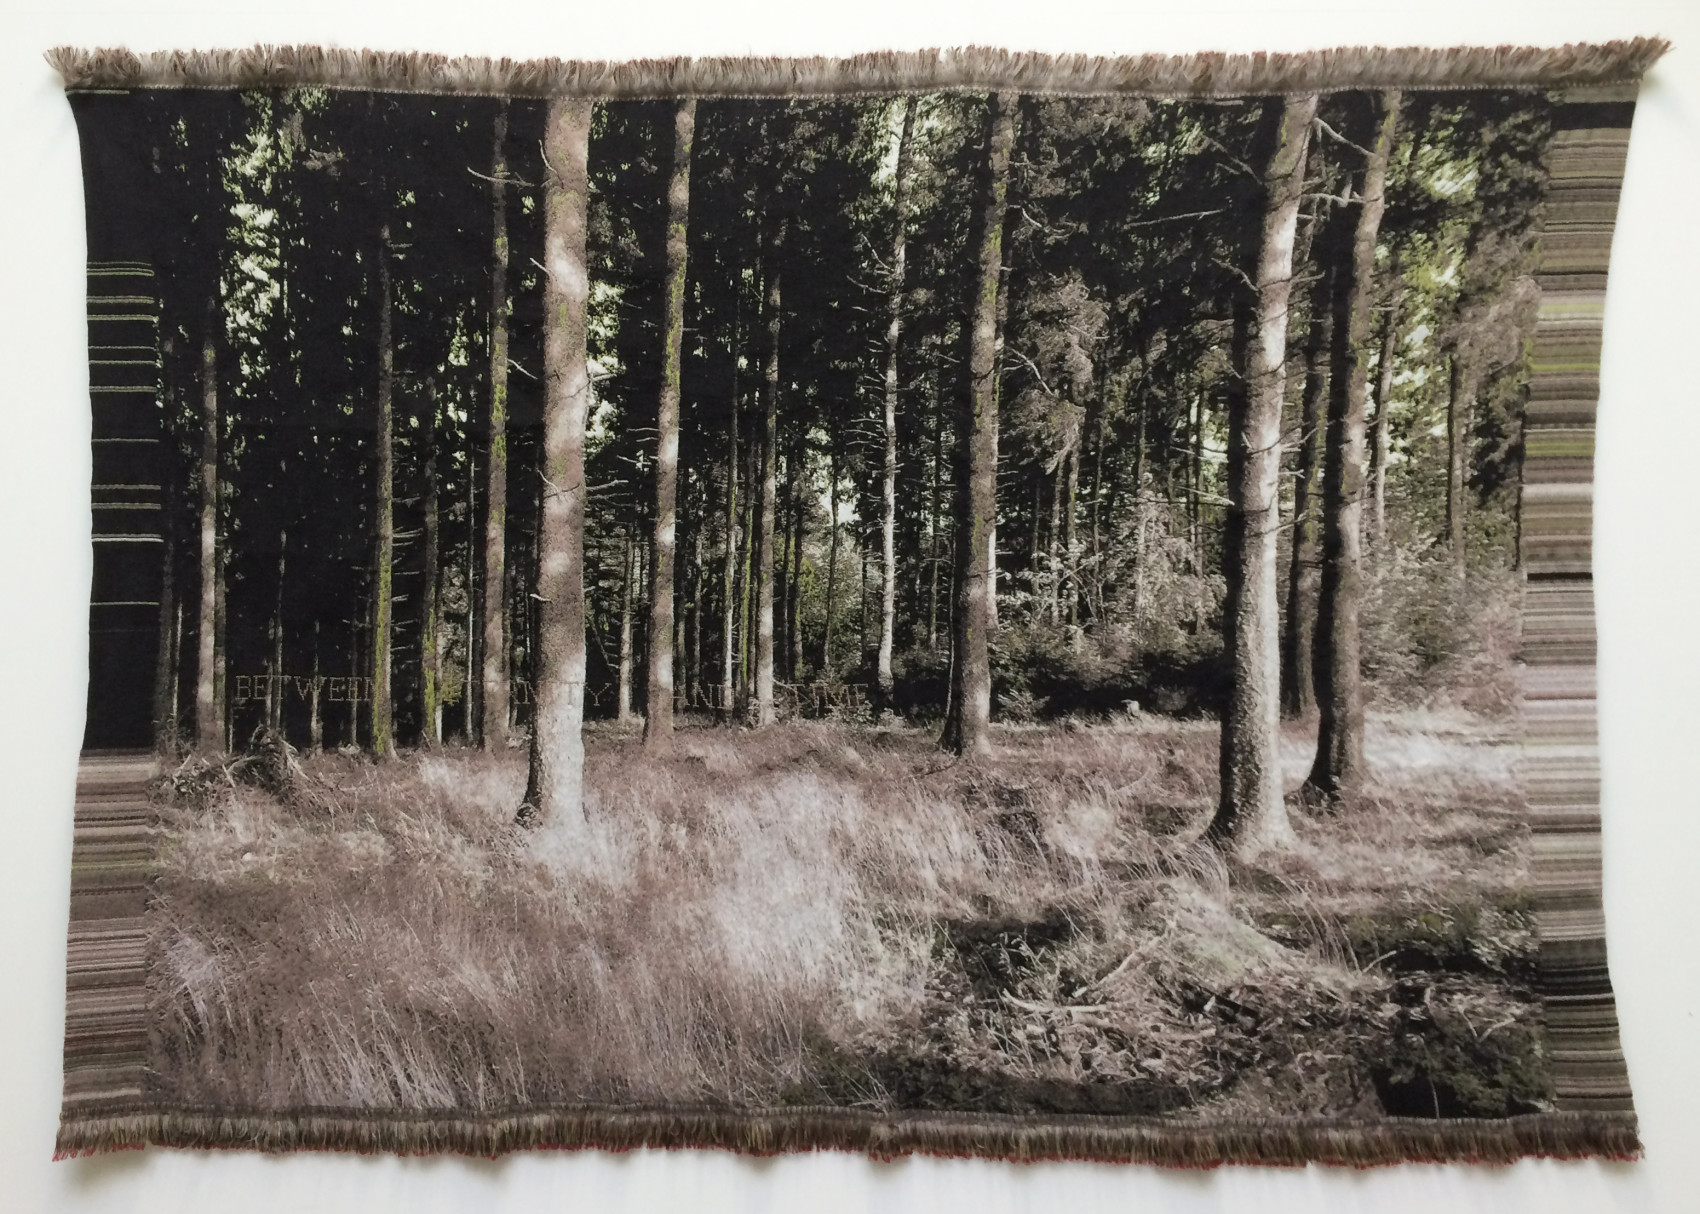 'Between eternity and time' (Emily Dickinson)- Jacquard woven -double weaves- mohair andcashwool -text embroidered by hand- 170 x 238 cm - 2015